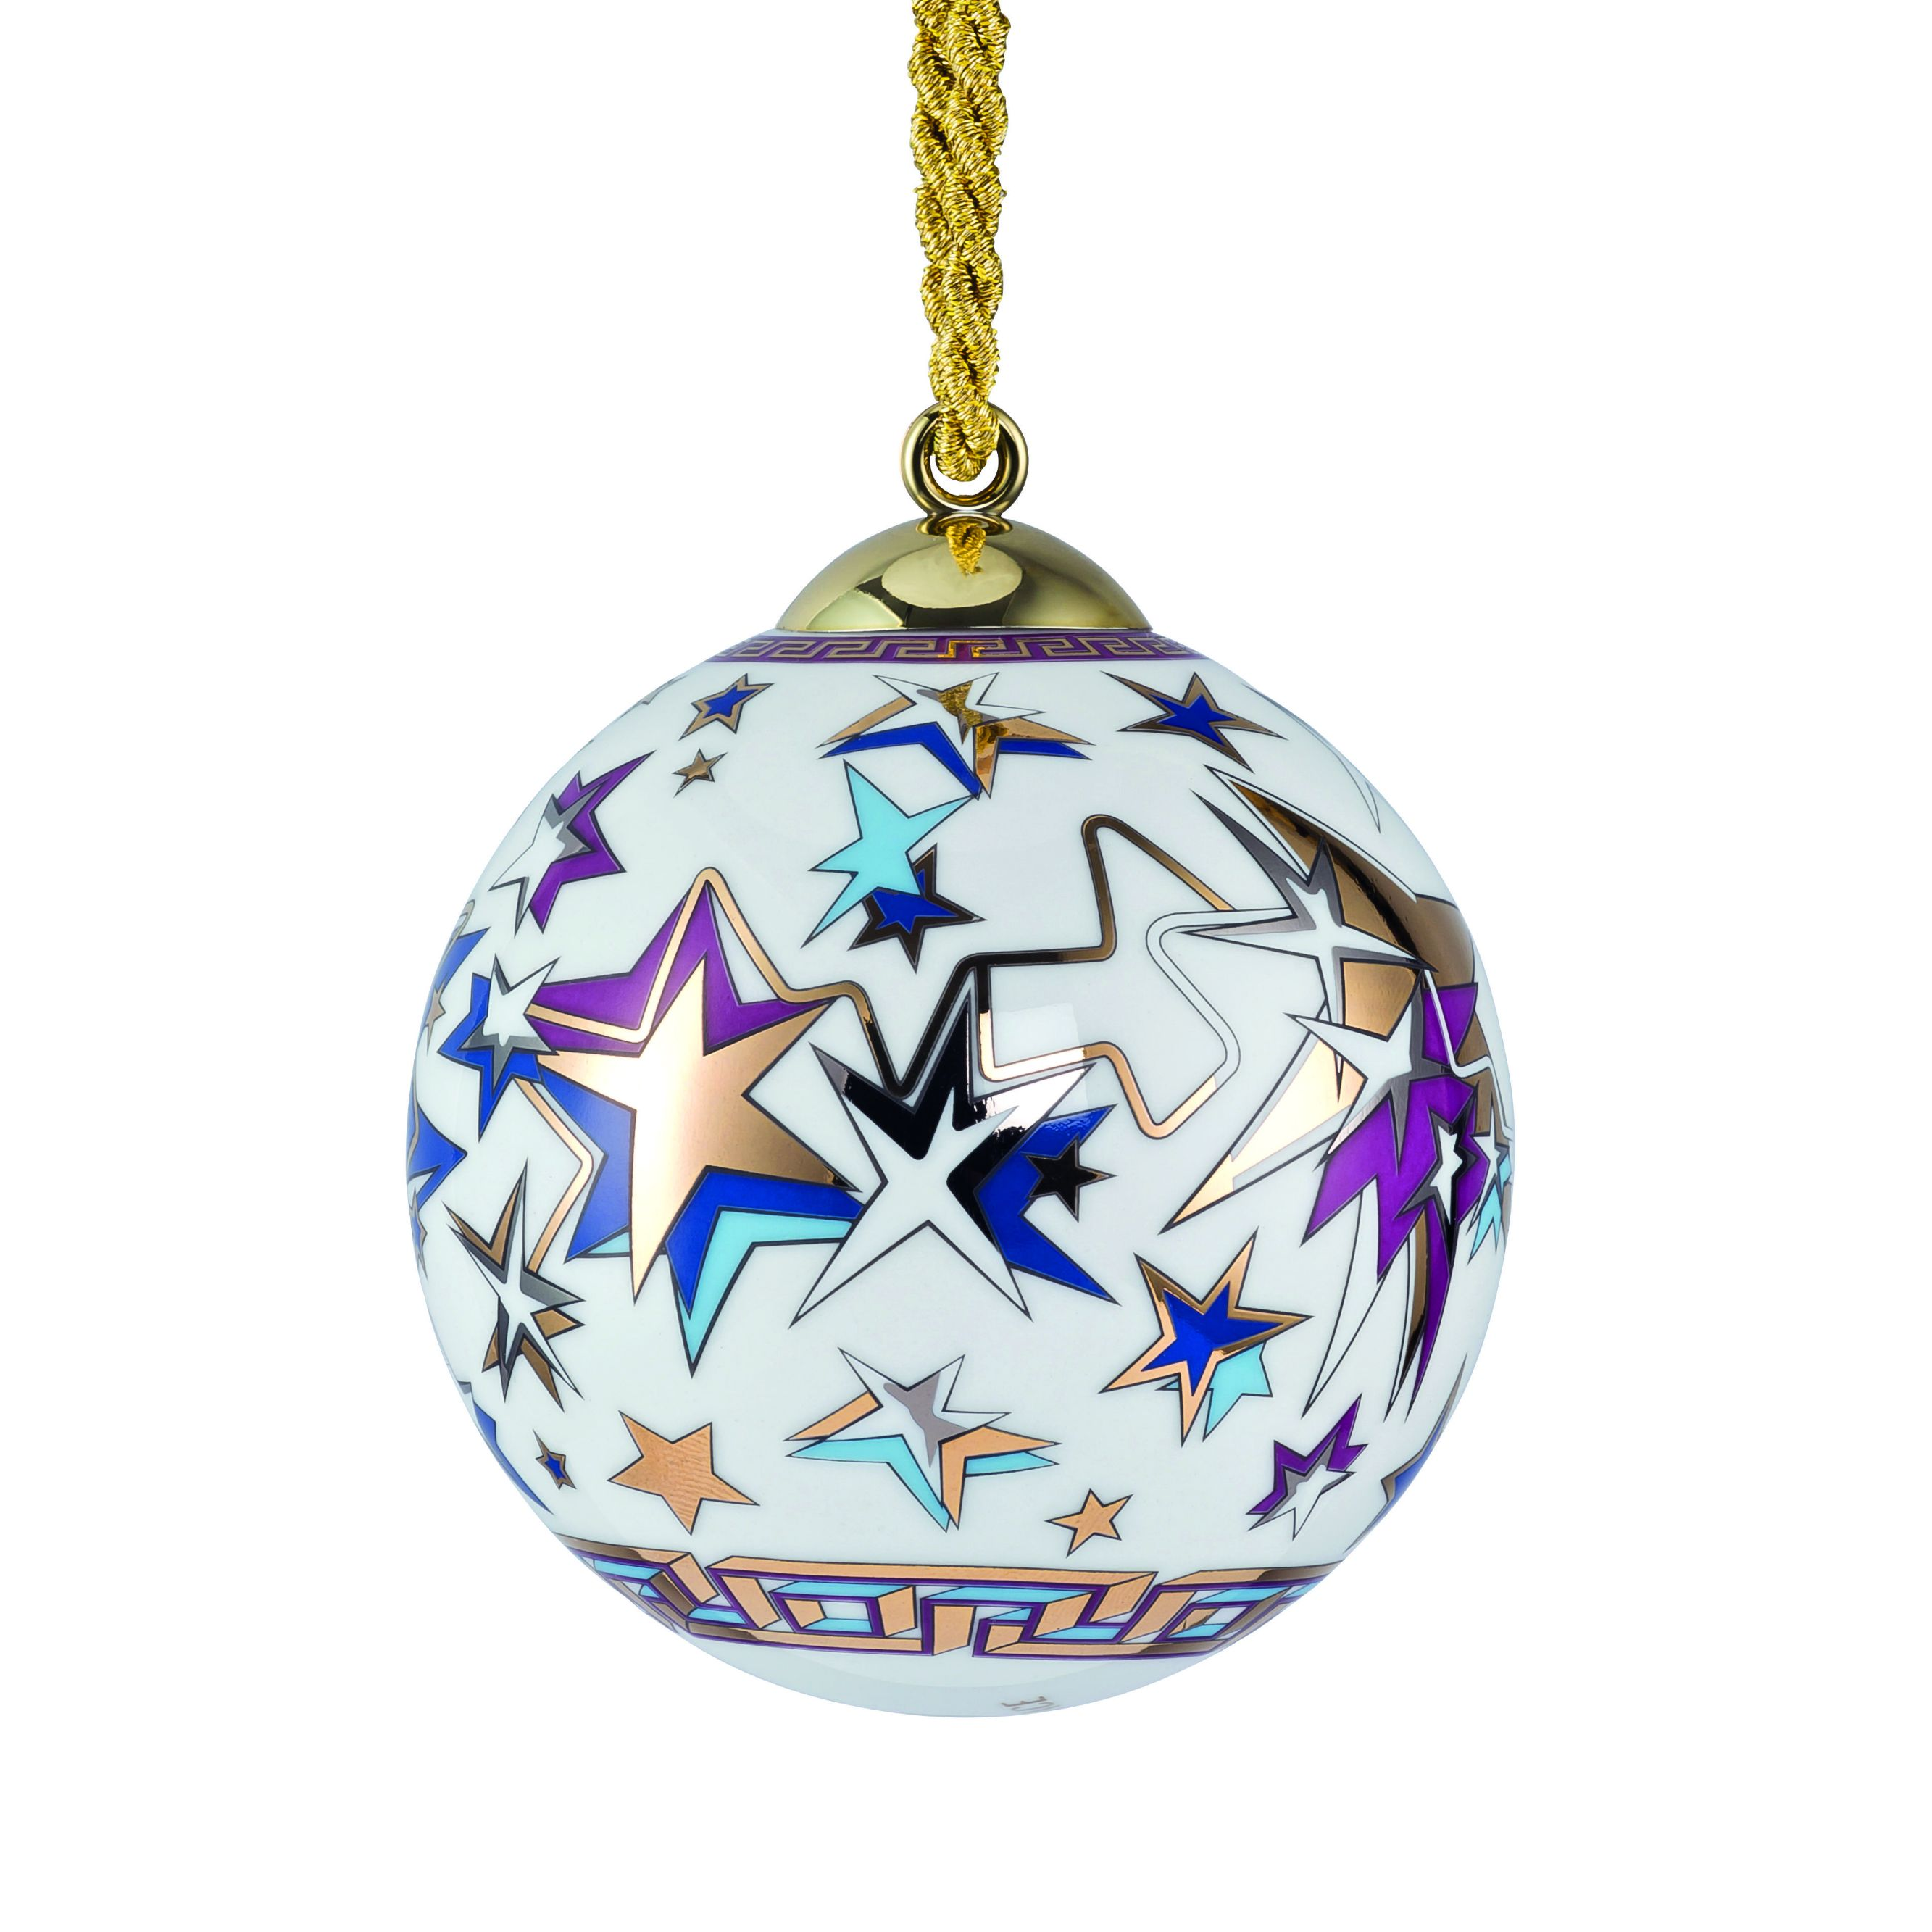 Versace Ball Ornament